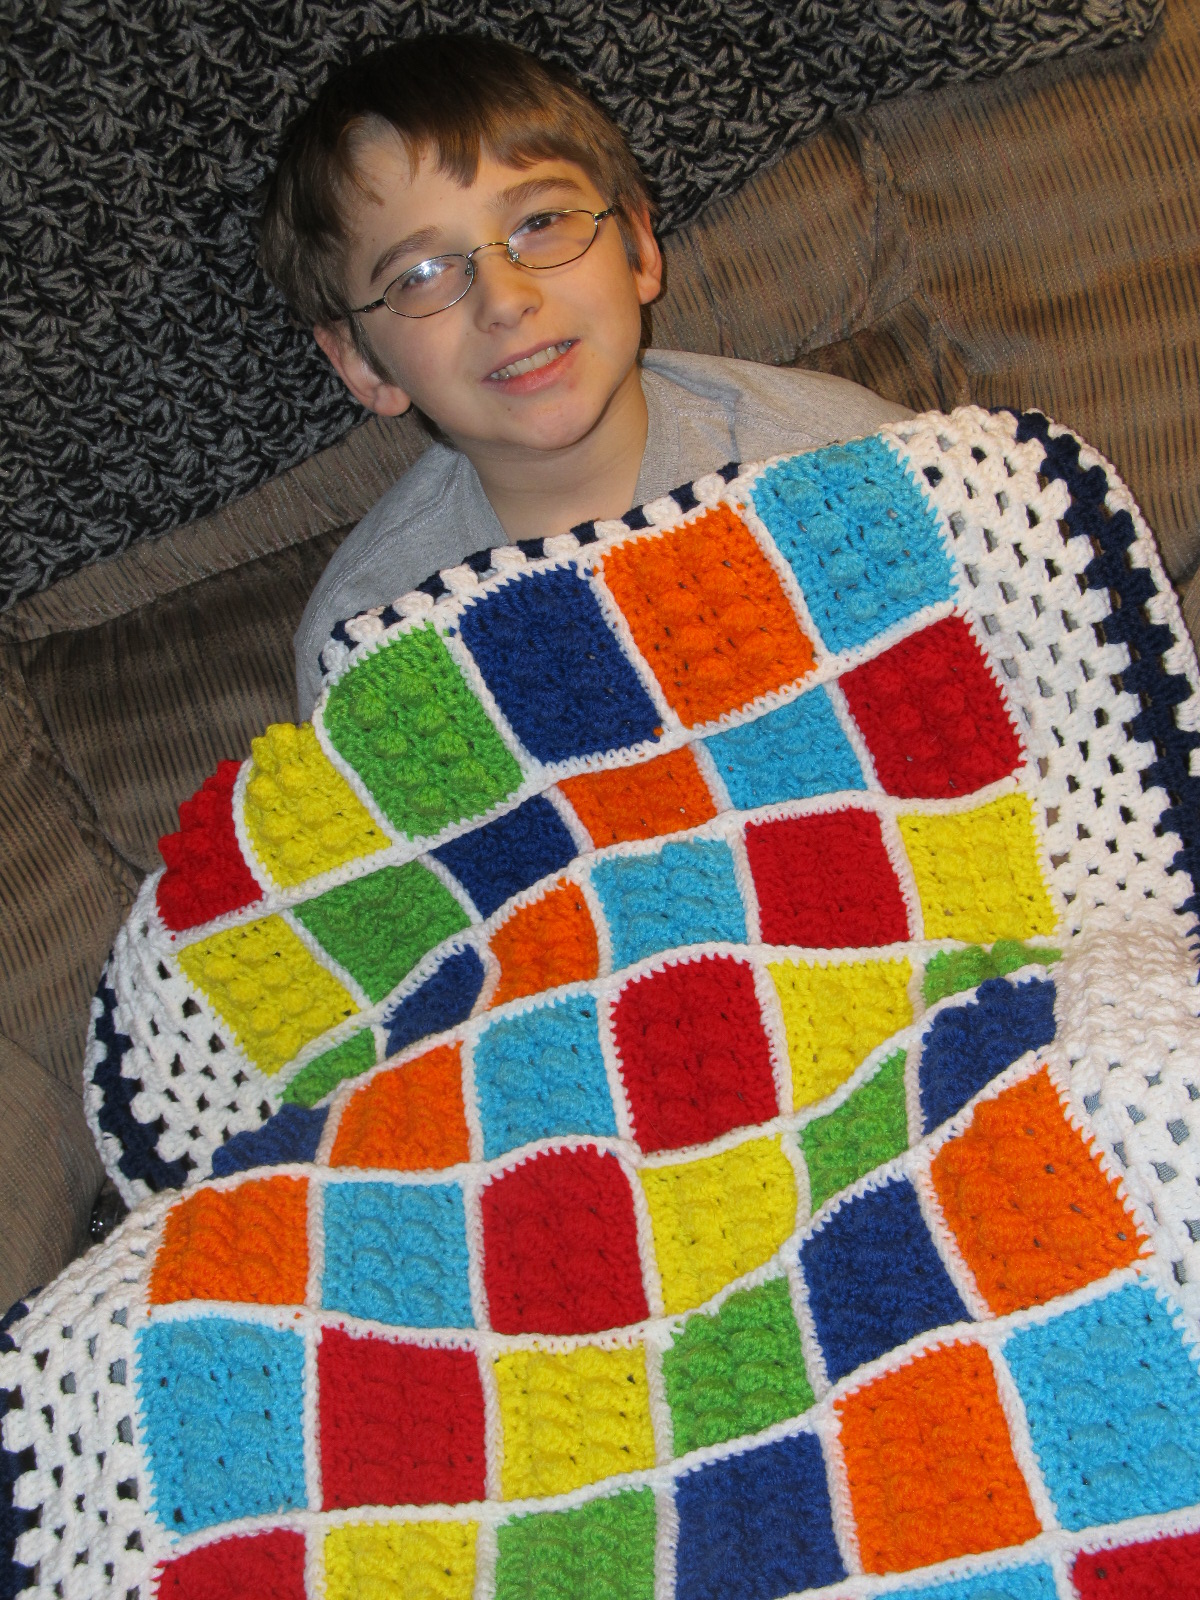 Crochet Lego Blanket : Simply Crochet and Other Crafts: Lego Blanket!